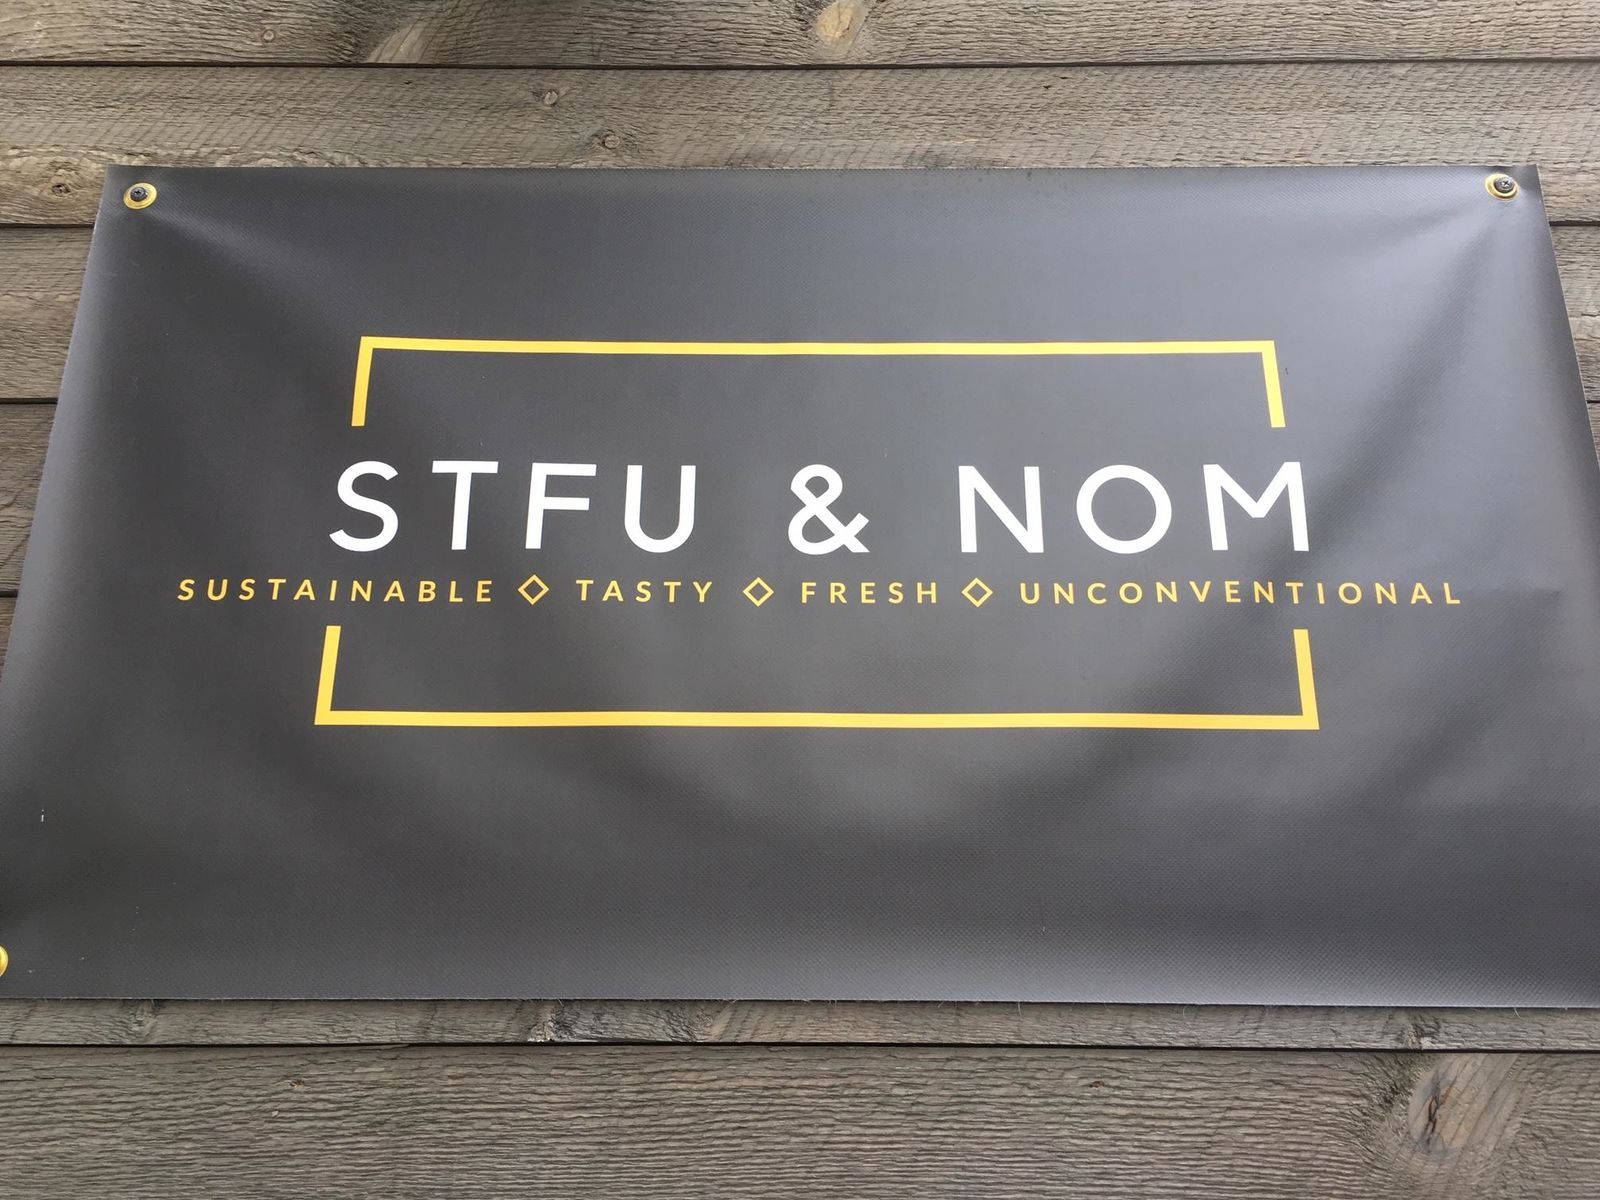 STFU & Nom offers gluten free food in Eugene. (SBG)